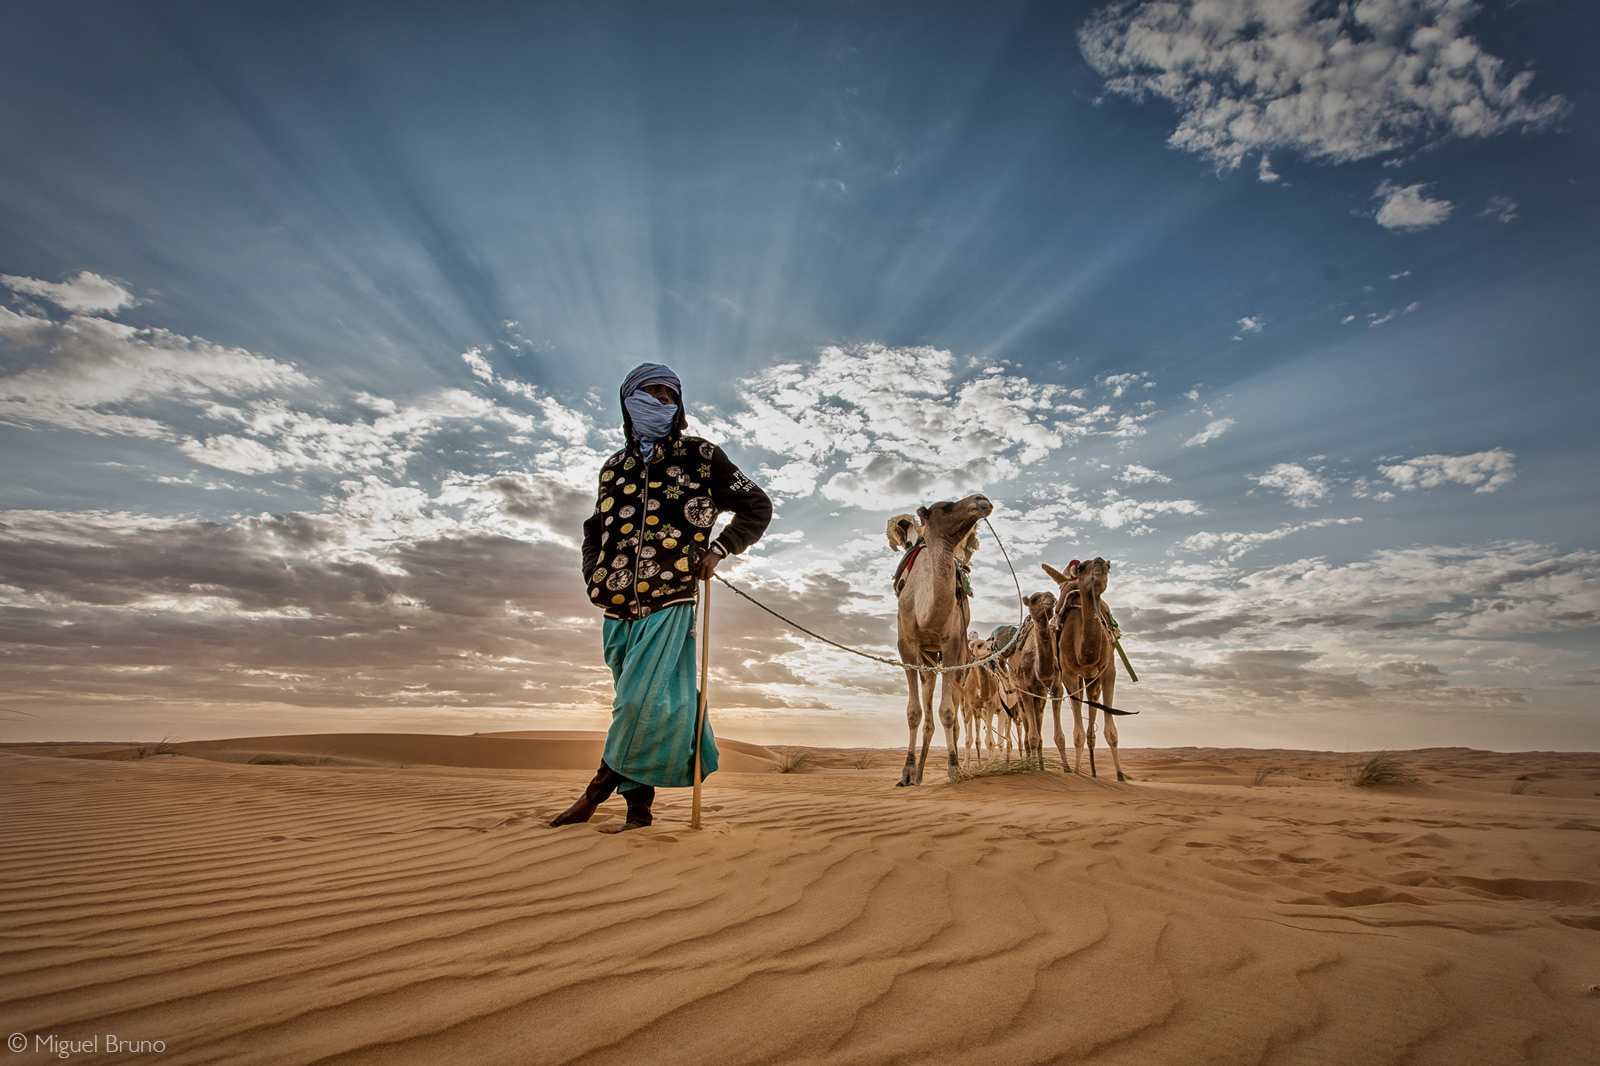 A nomad in the Chinguitti Desert, Mauritania © Miguel Bruno